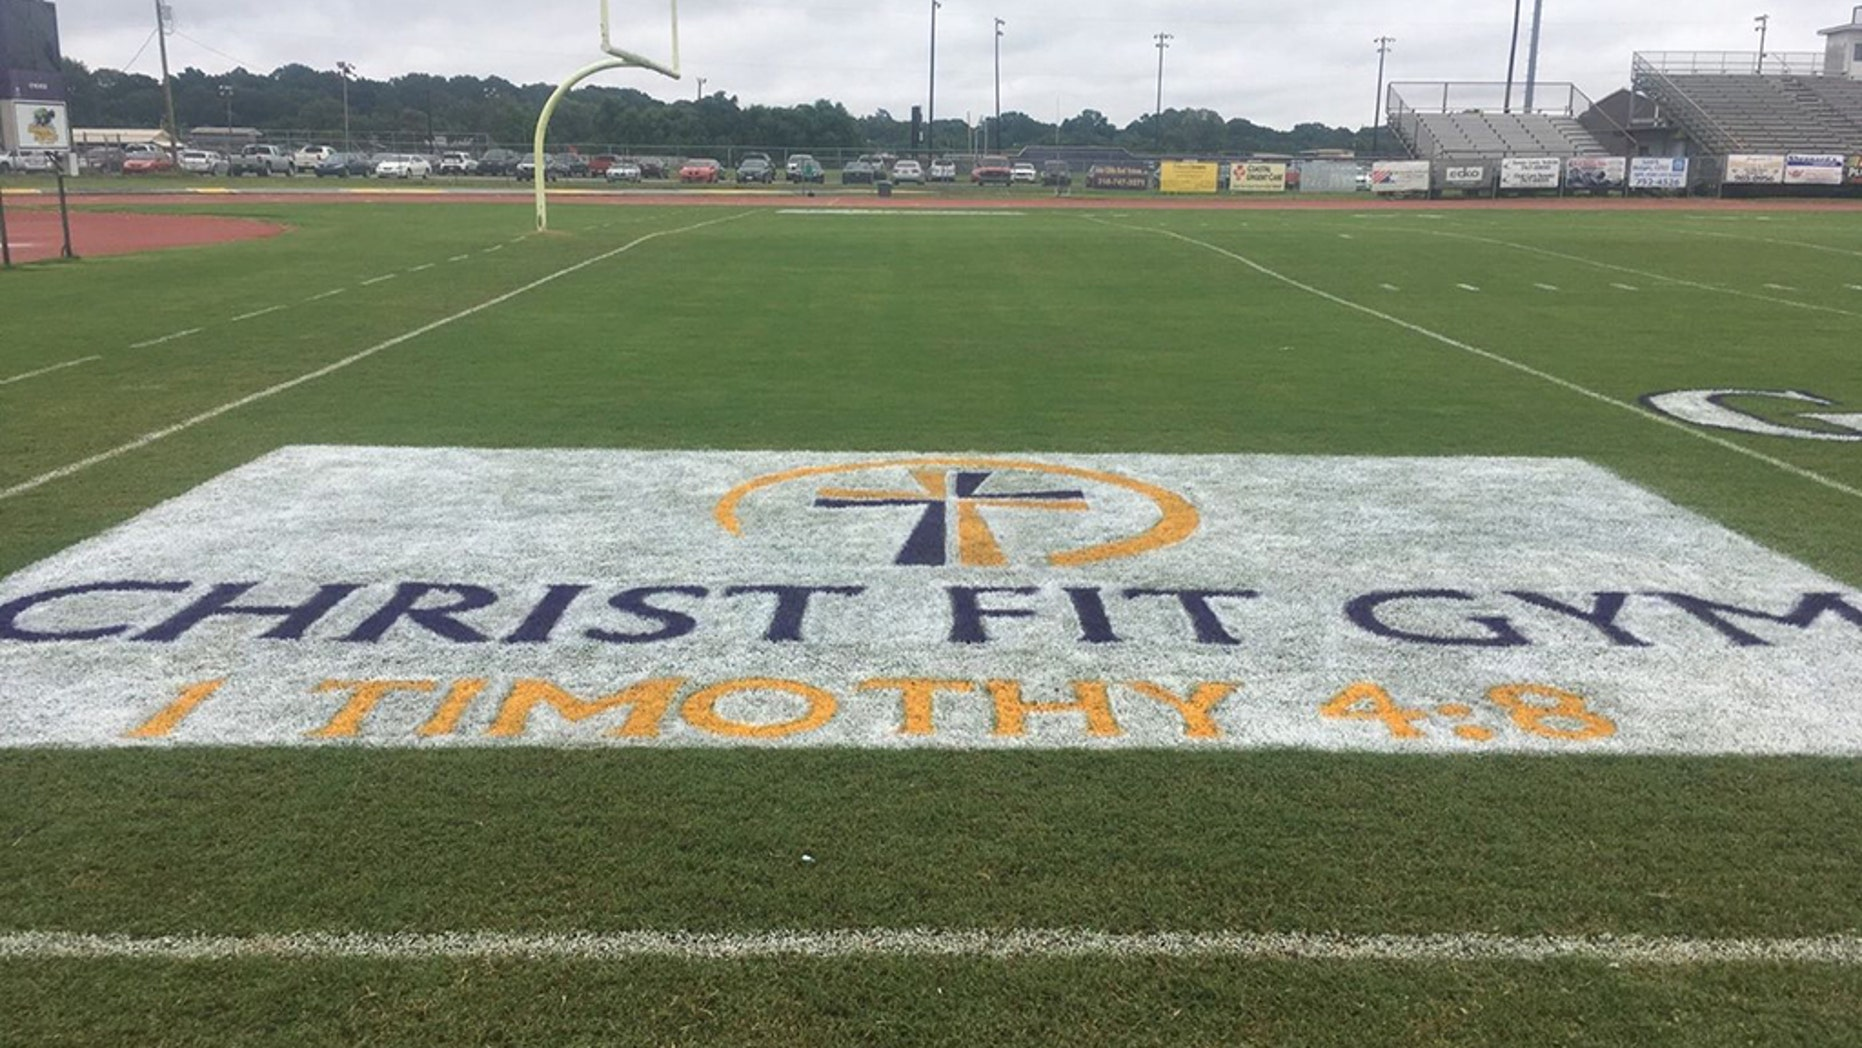 "Two Benton High School students were ordered to remove a logo from the football field end zones because it included Christian references. The logo belonged to Christ Fit Gym, a faith-based gymnasium in nearby Bossier City, Louisiana. It included the words ""Christ Fit Gym,"" a cross and a Bible verse reference, 1 Timothy 4:8."